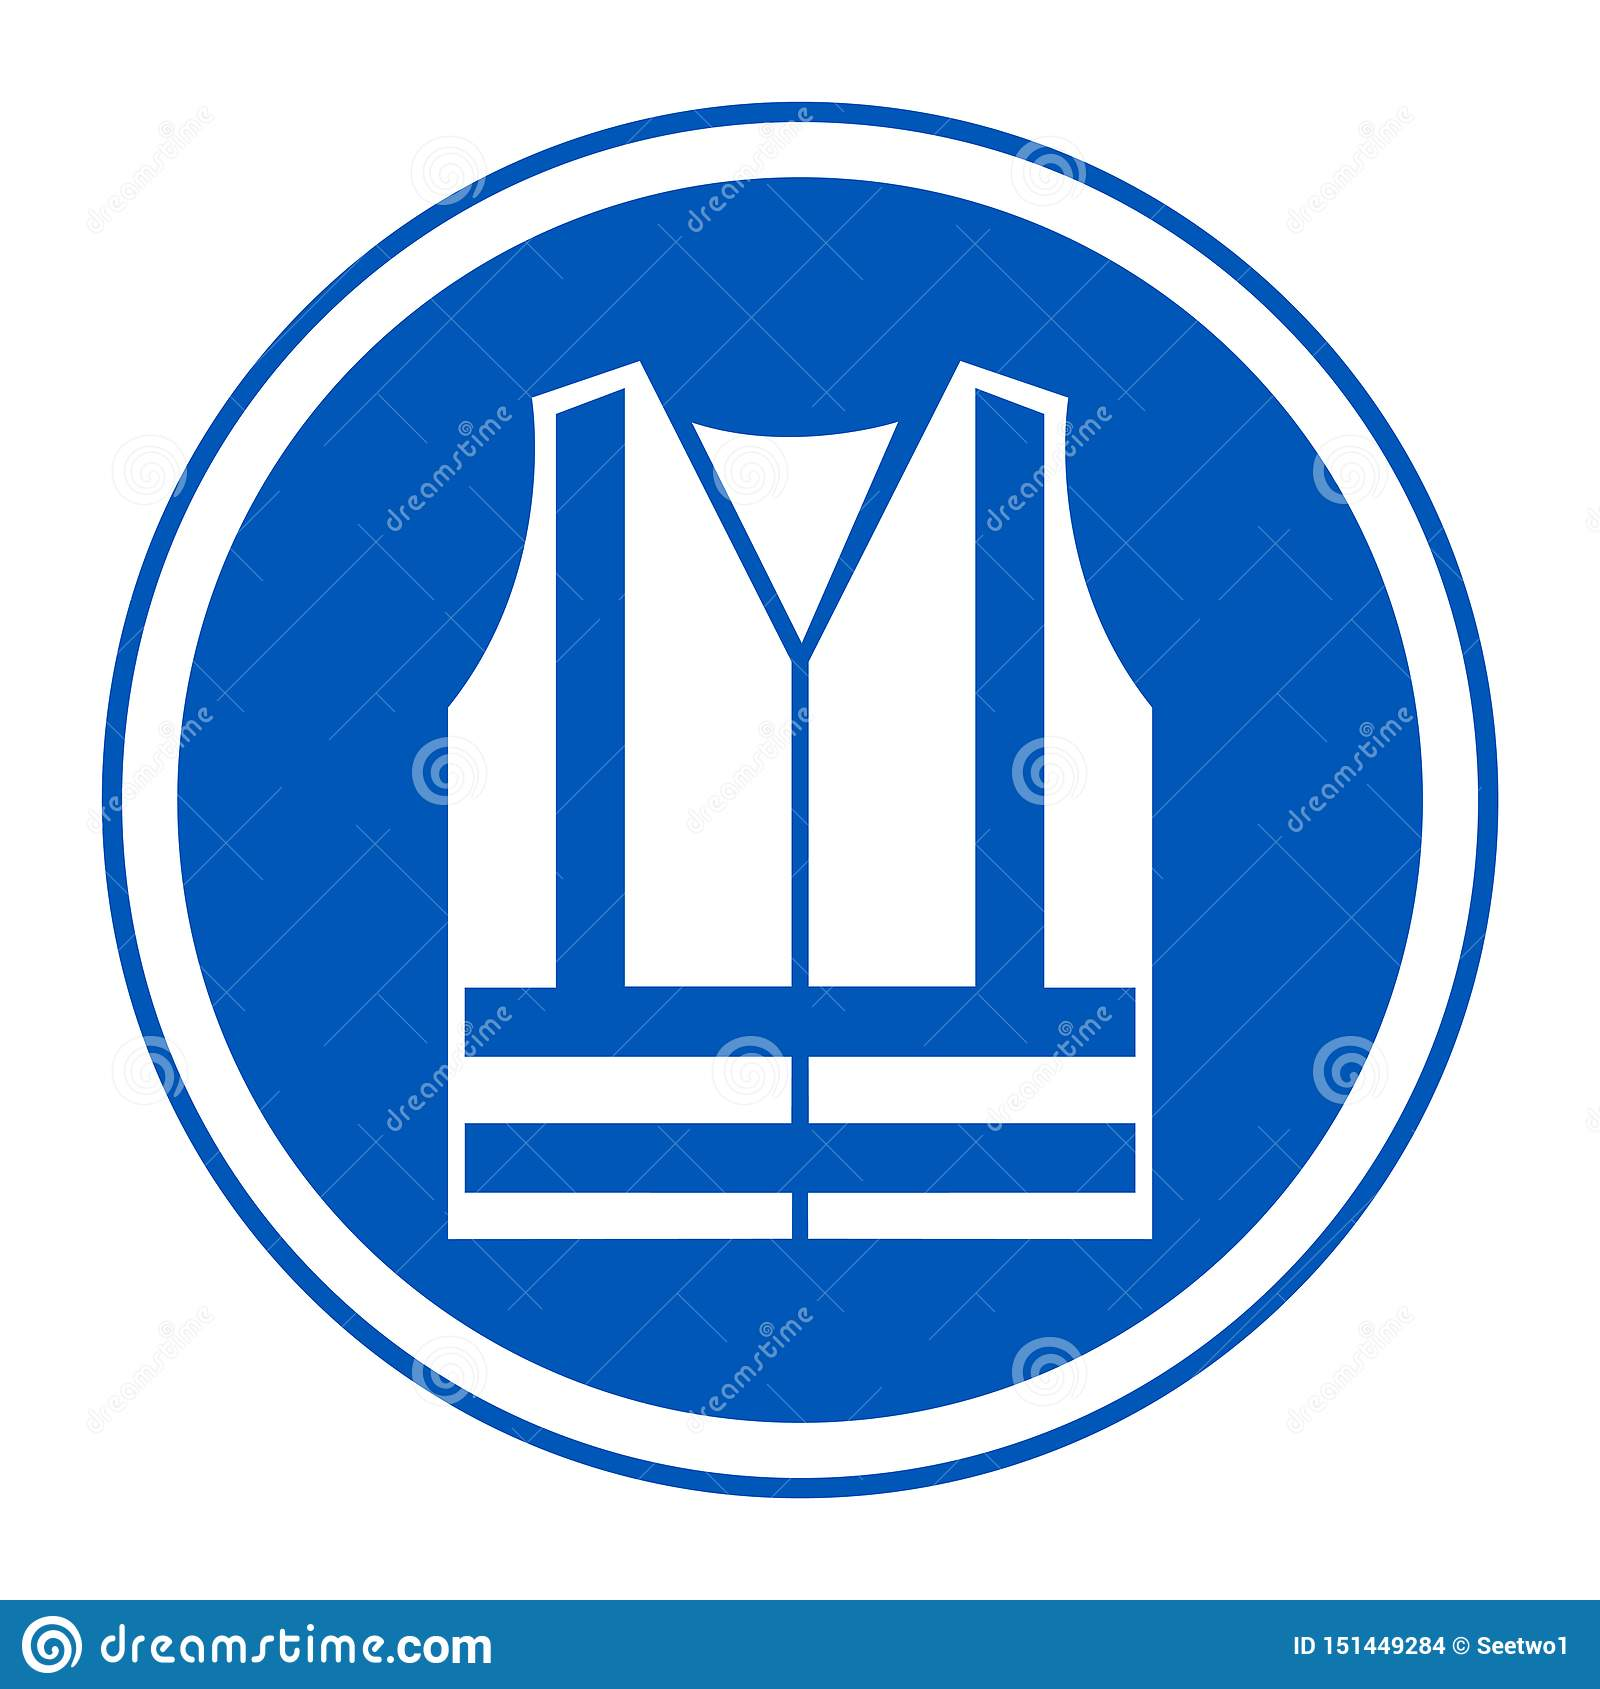 PPE Icon.Wear High Visibilty Clothing Symbol Sign Isolate On White Background,Vector Illustration EPS.10